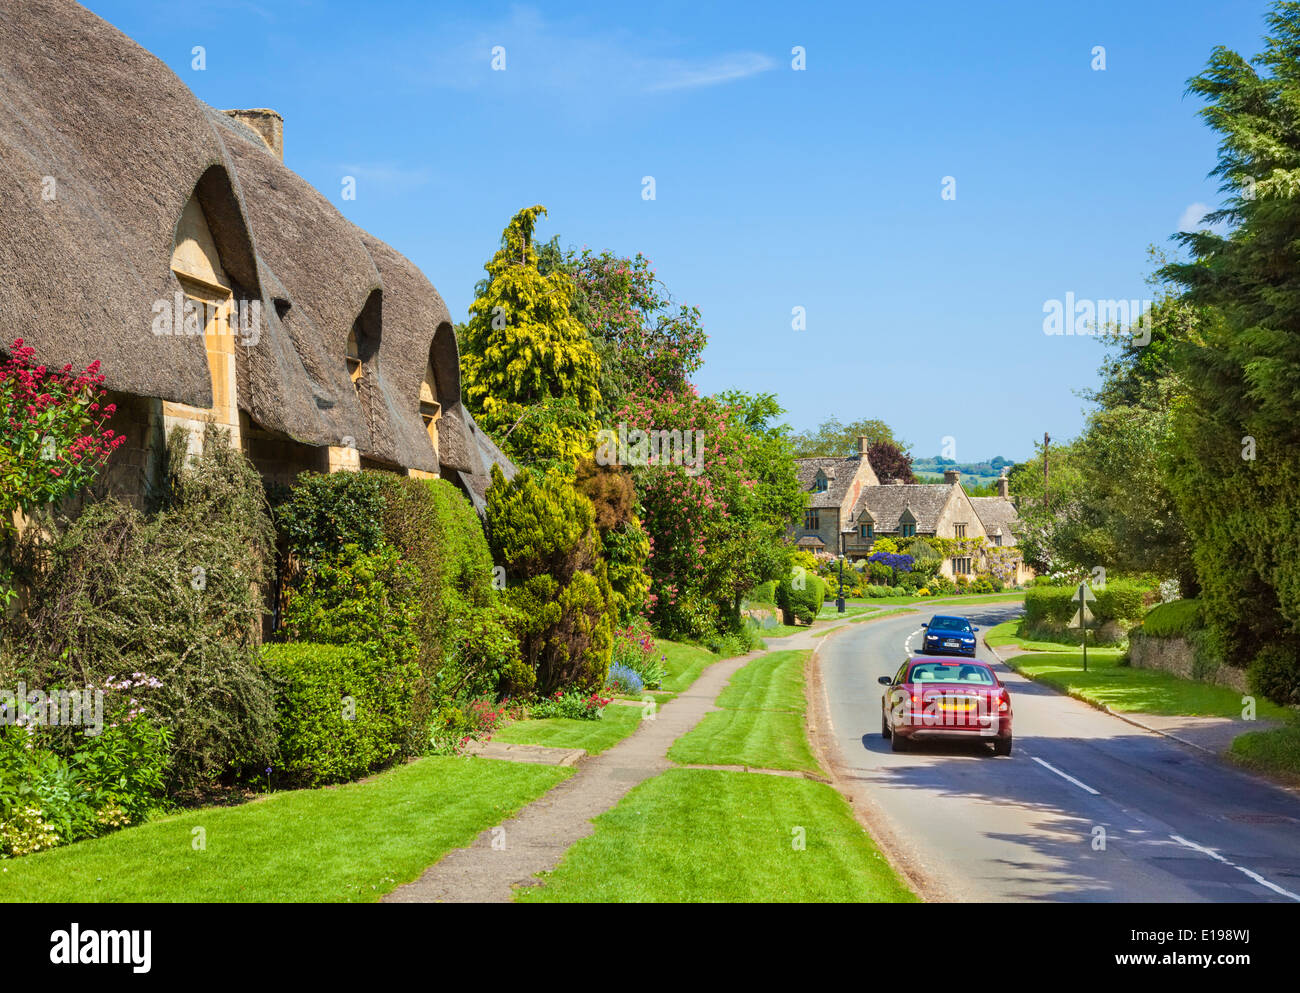 Thatched Cottage In Chipping Campden Cotswolds Village The